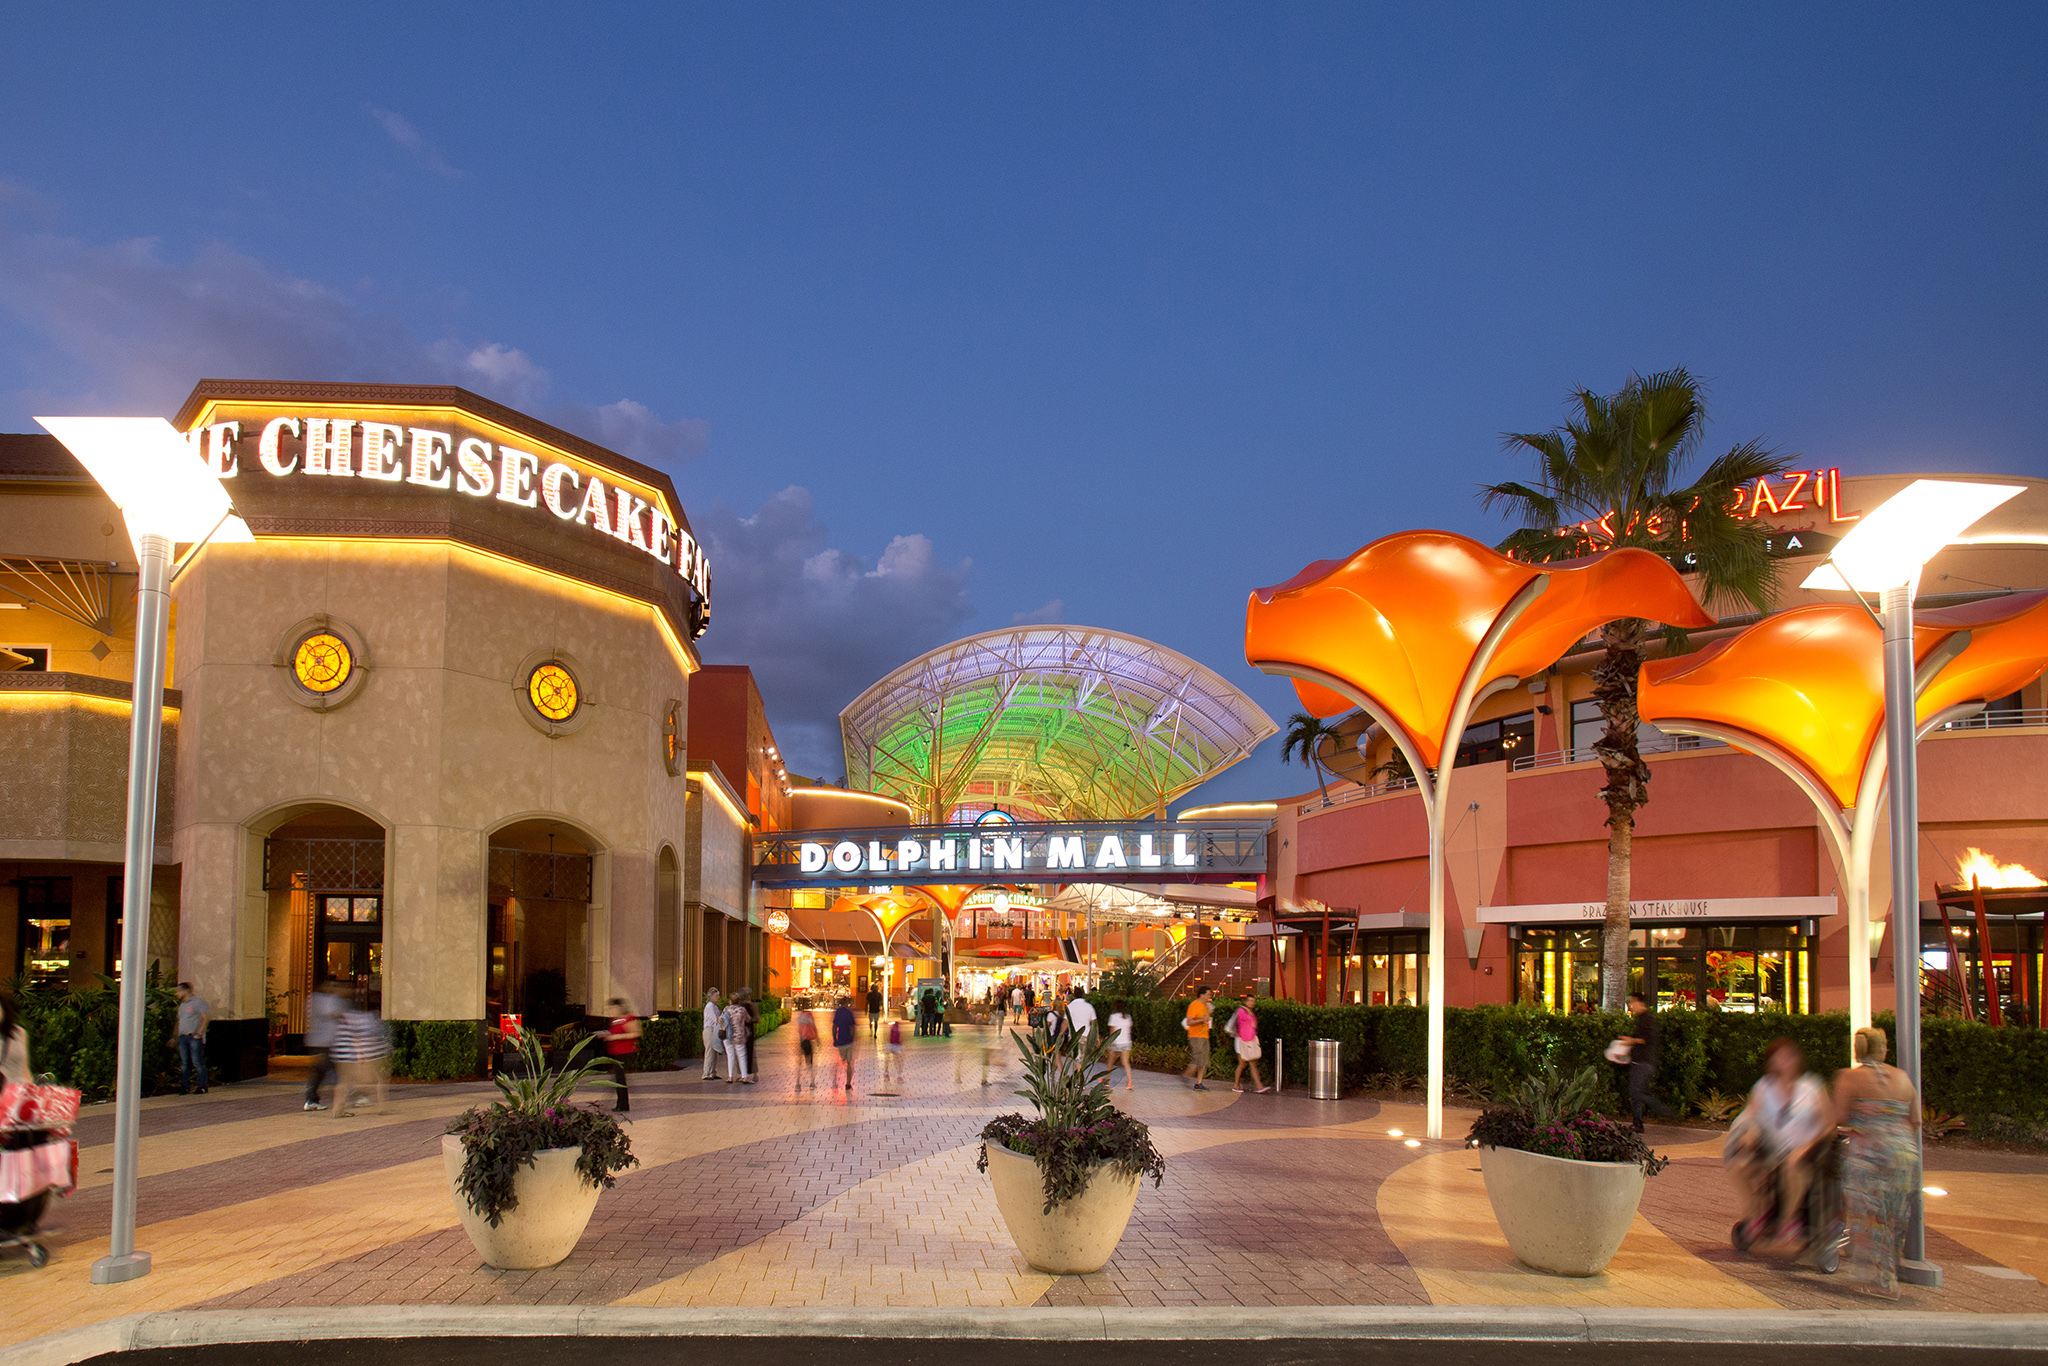 The best Miami outlet malls for bargain shopping